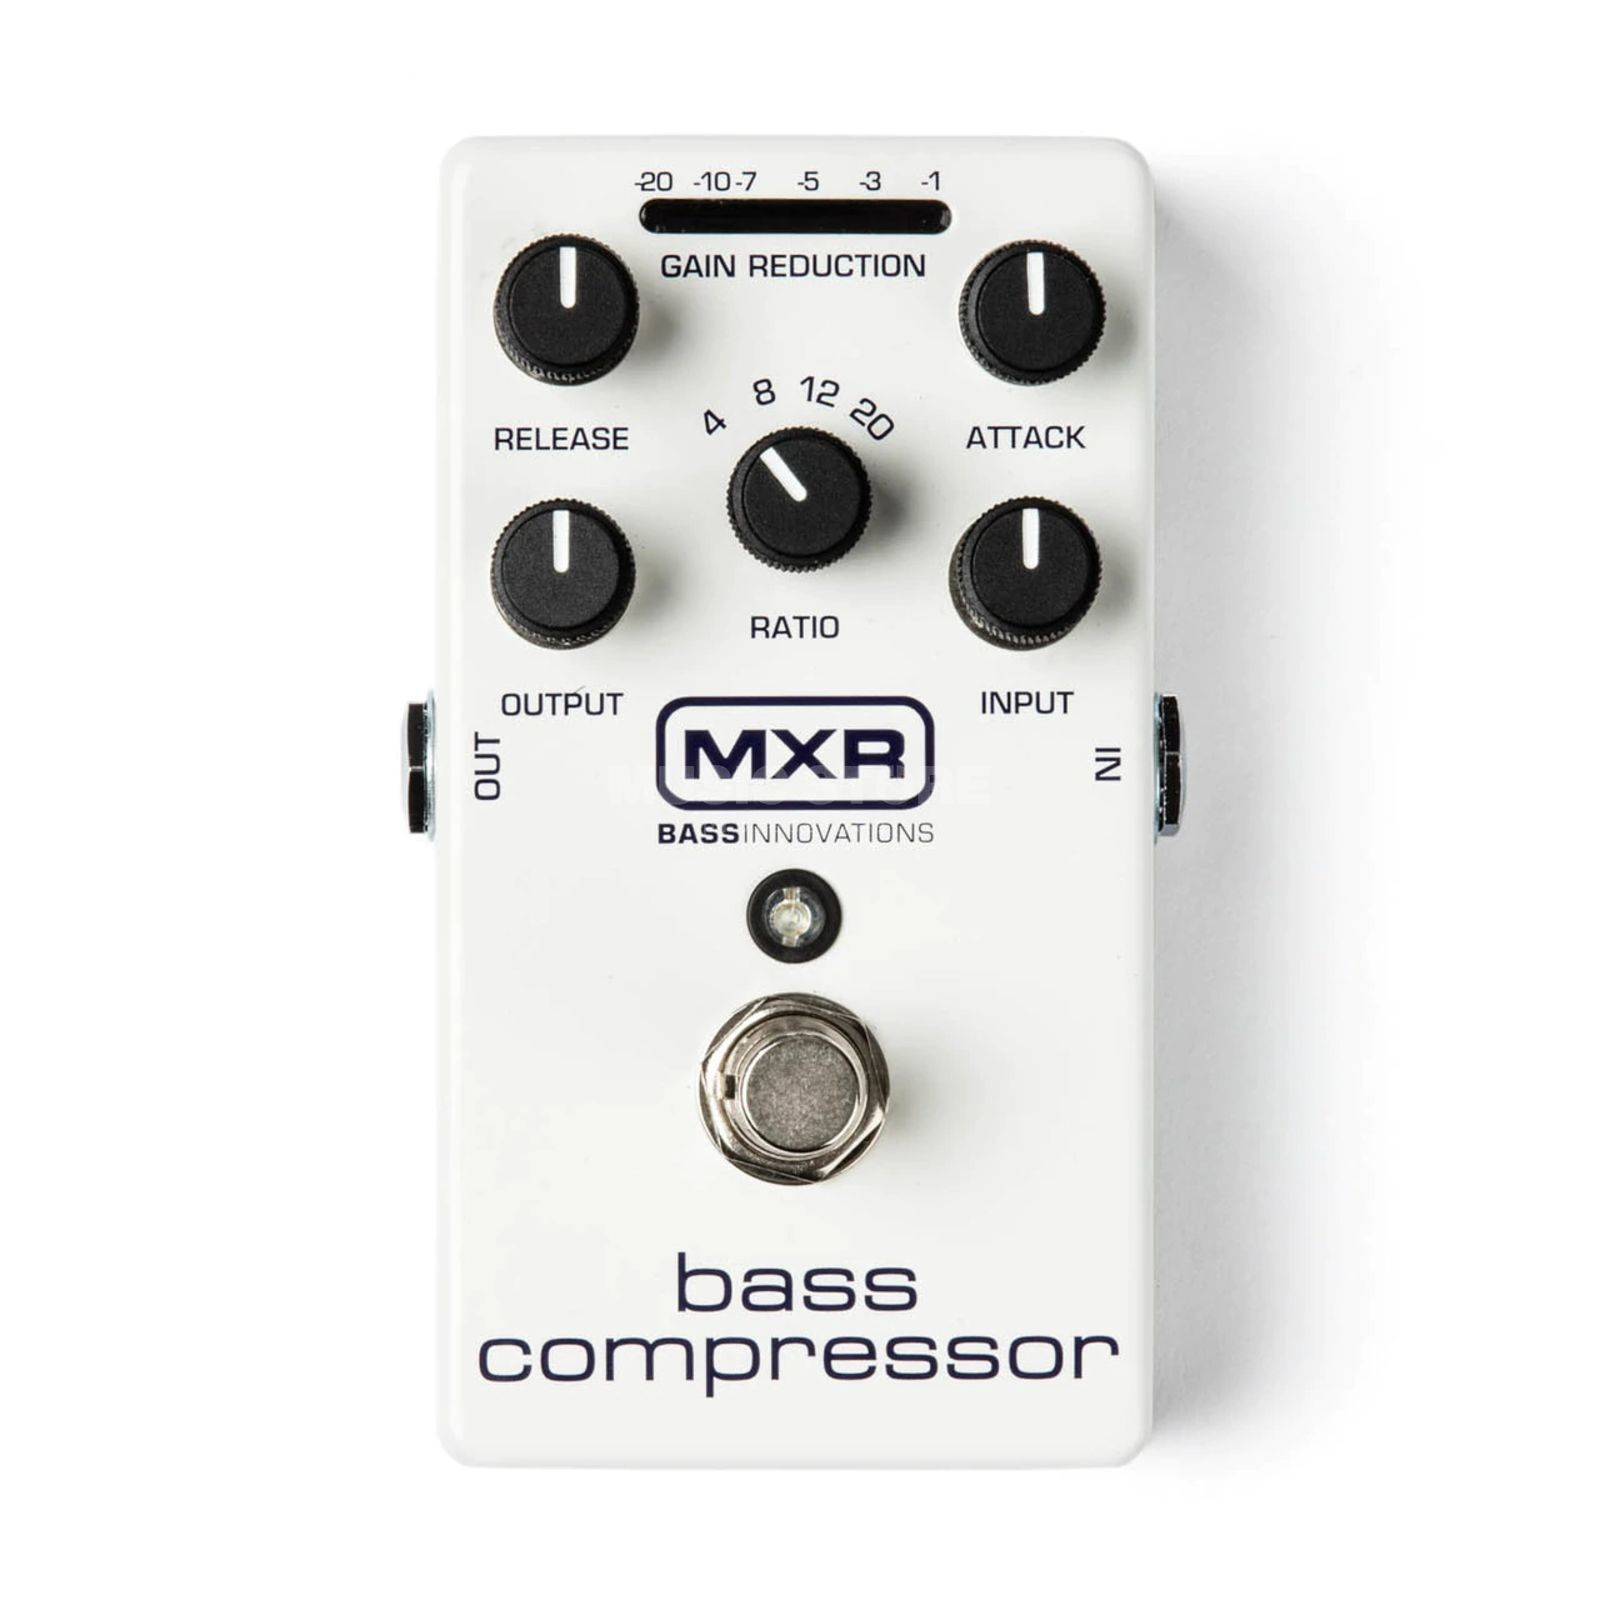 MXR M87 Bass Compressor Bass Guita r Effects Pedal   Изображение товара